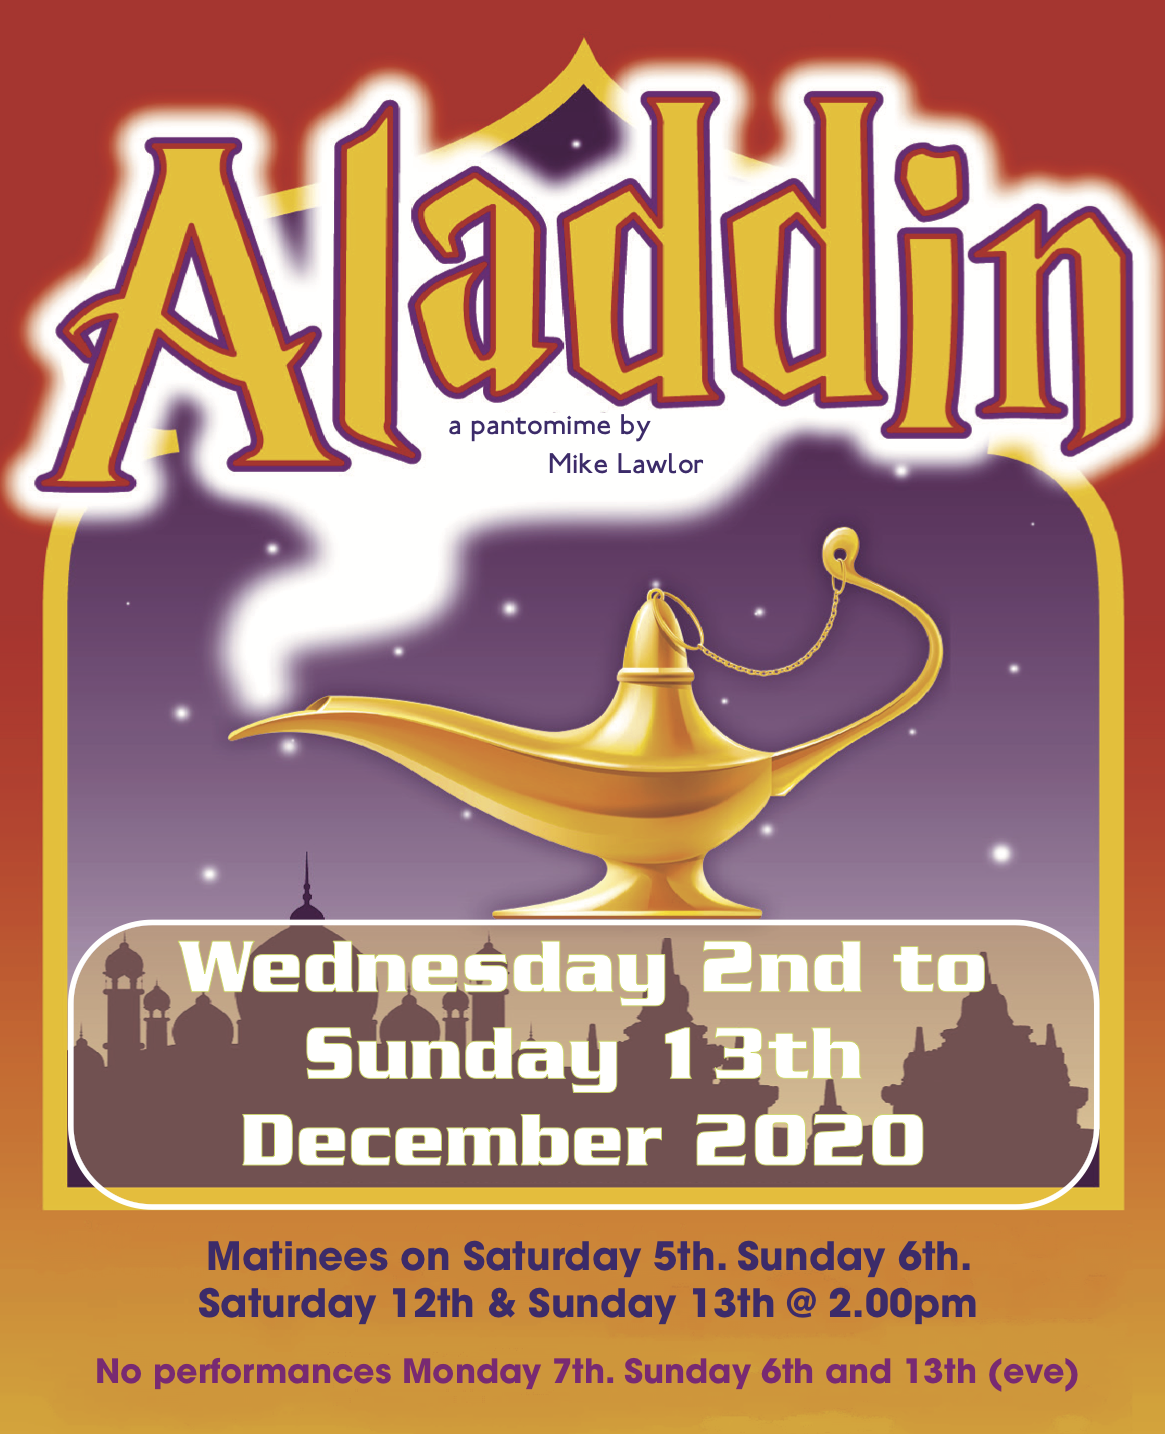 Aladdin -  Wednesday 2nd to Sunday 13th December 2020 at 7:30pm (Matinees on Saturday and Sunday at 2:00pm. No Performance Monday 7th or Sunday evenings)